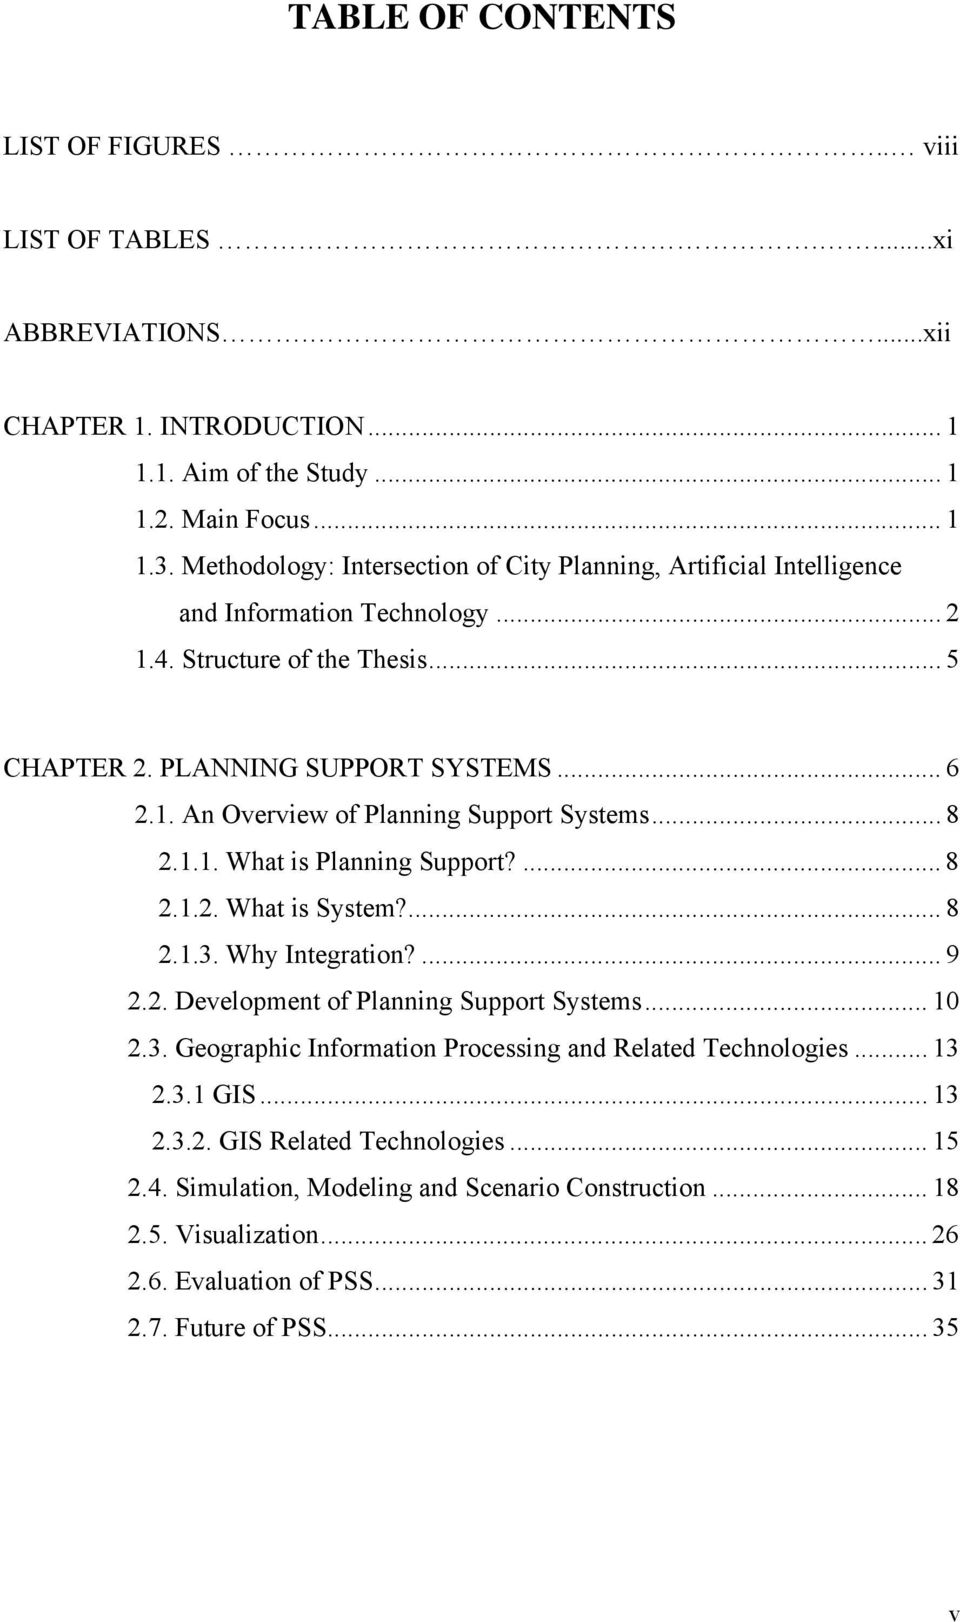 .. 8 2.1.1. What is Planning Support?... 8 2.1.2. What is System?... 8 2.1.3. Why Integration?... 9 2.2. Development of Planning Support Systems... 10 2.3. Geographic Information Processing and Related Technologies.